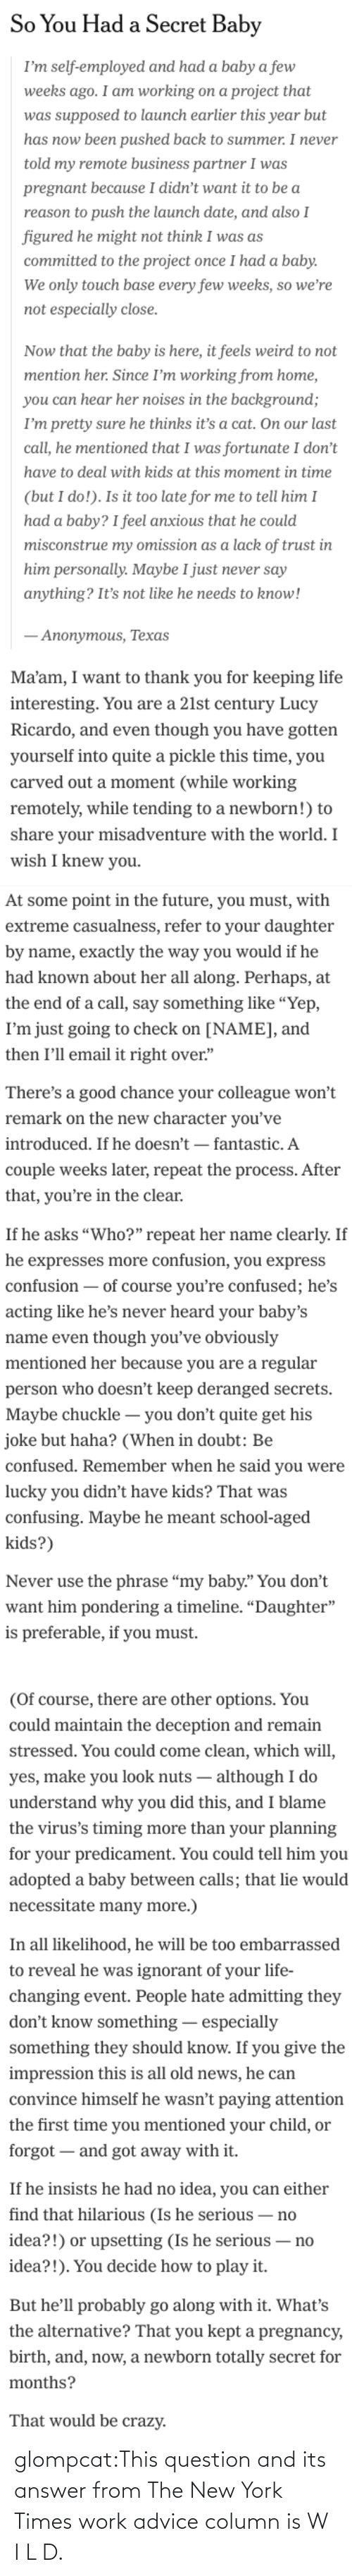 html: glompcat:This question and its answer from The New York Times work advice column is W I L D.